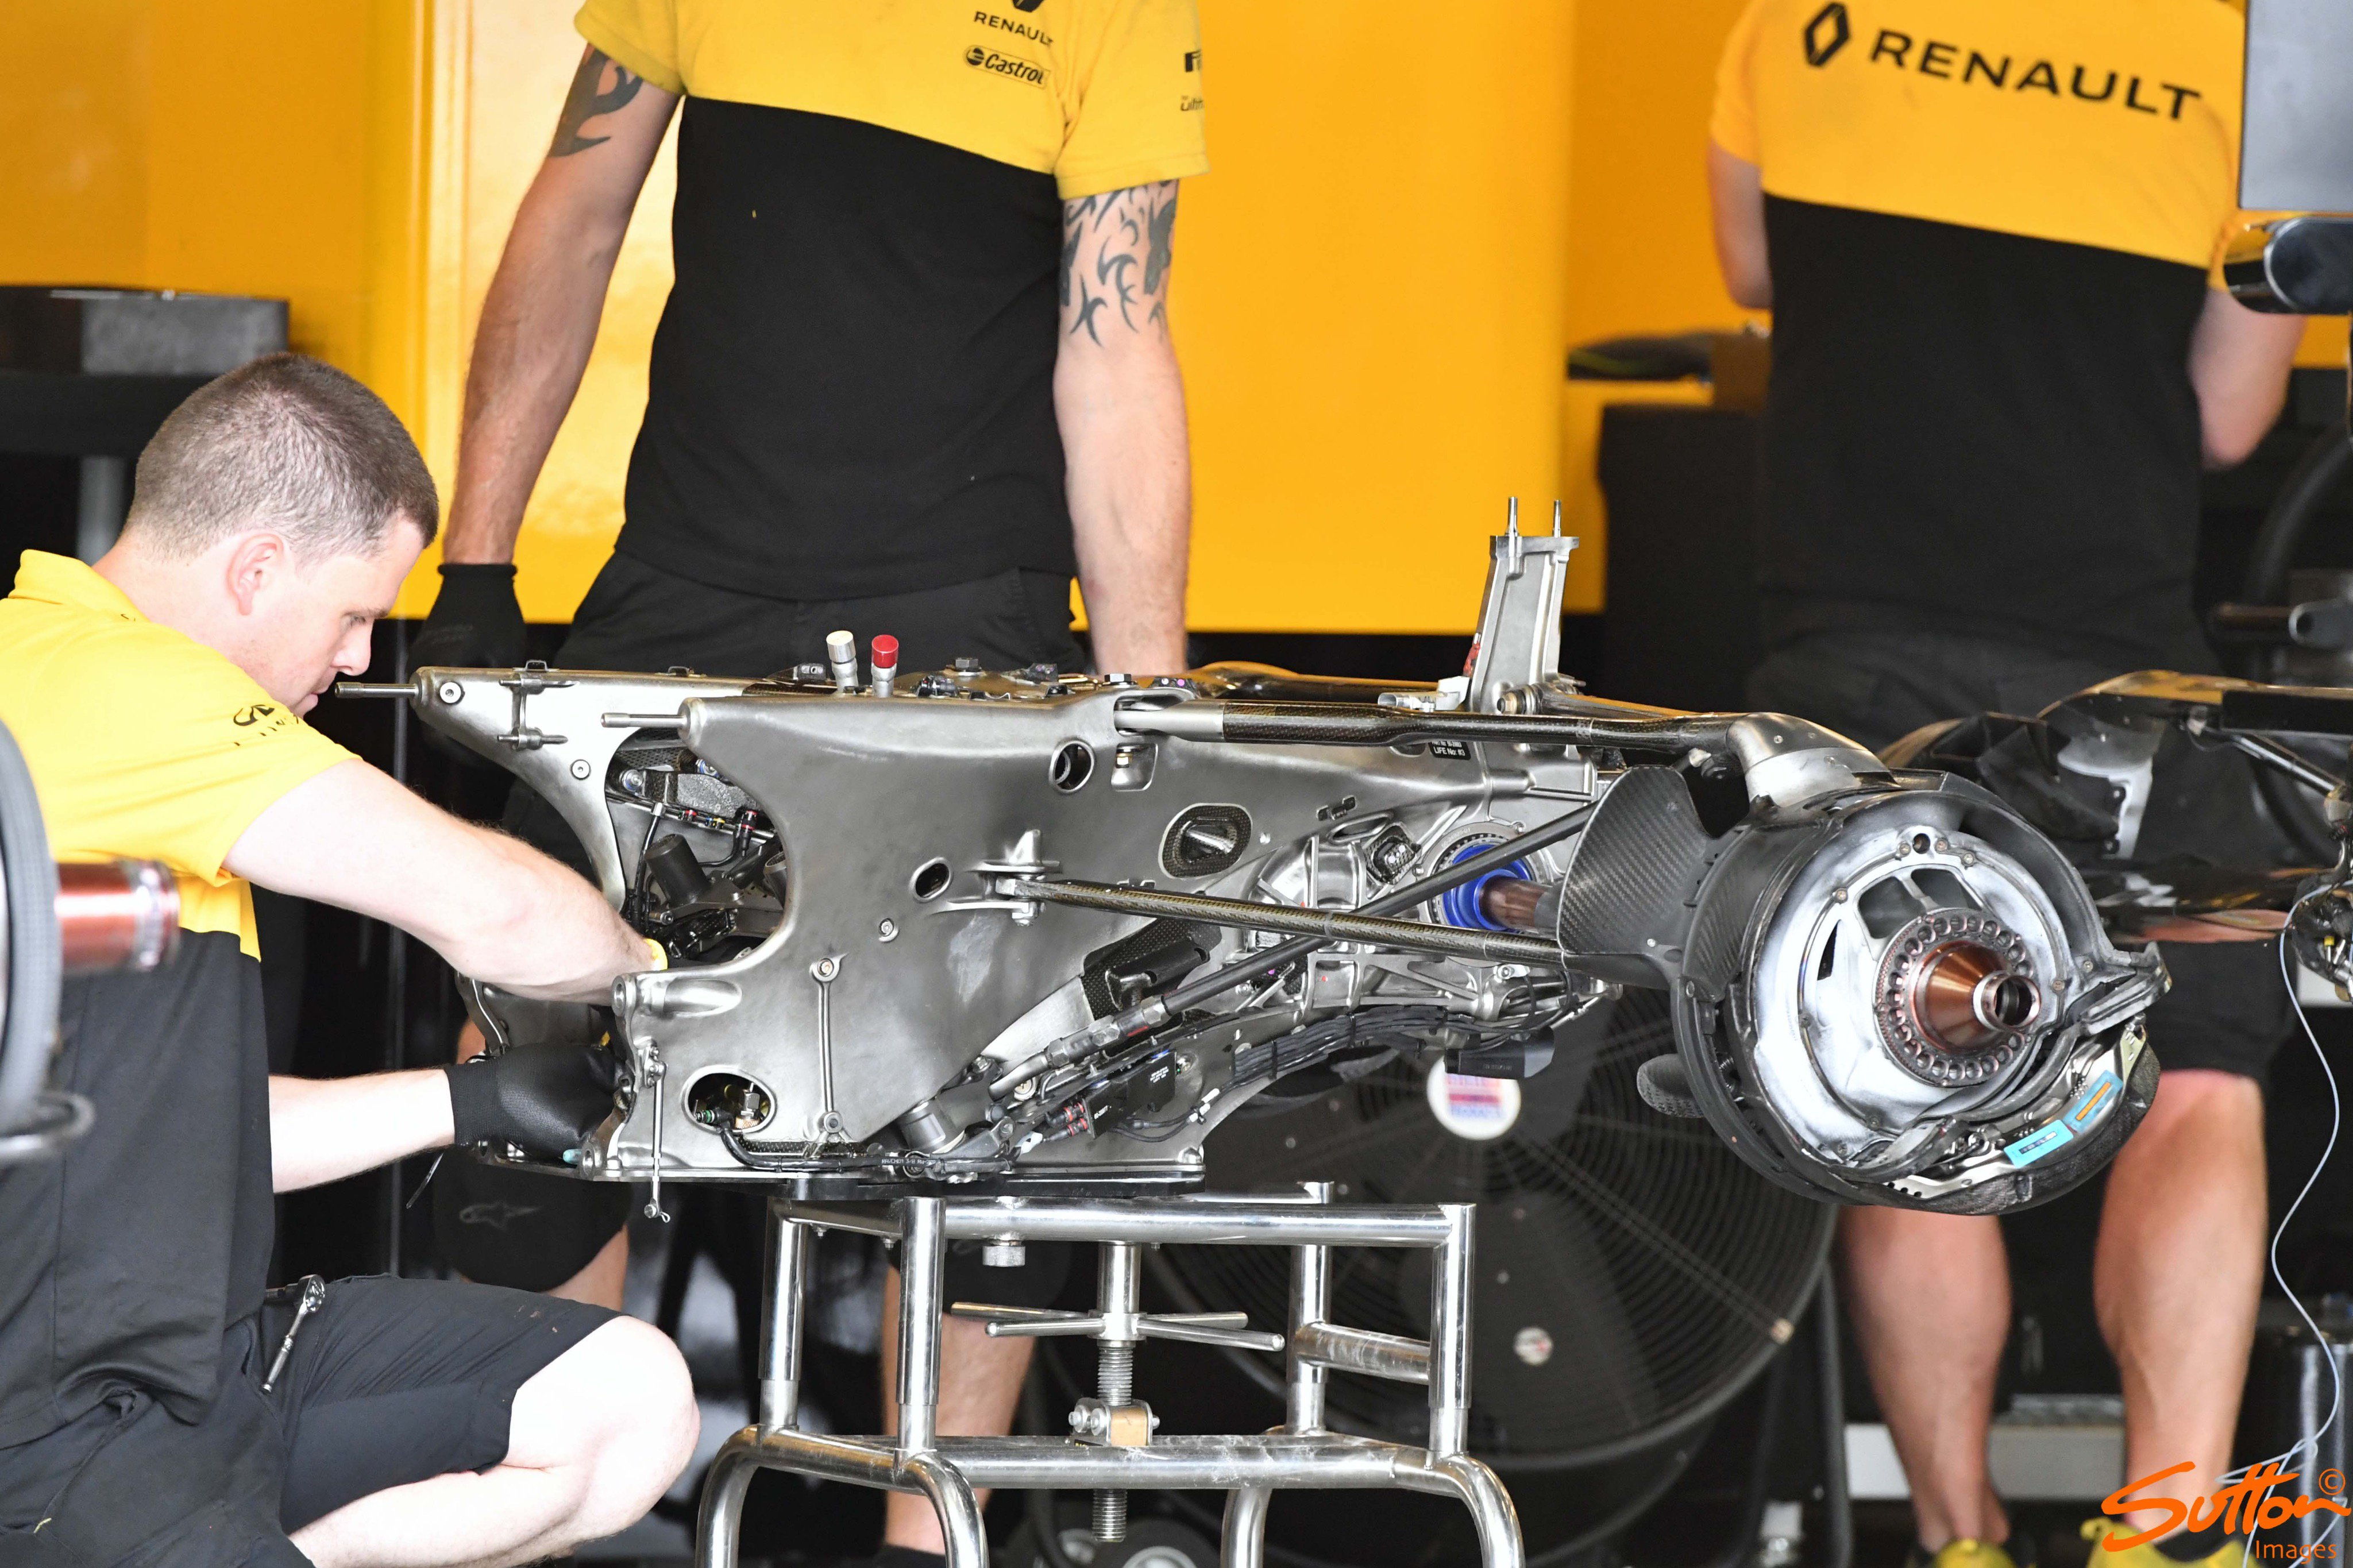 rs17-gearbox